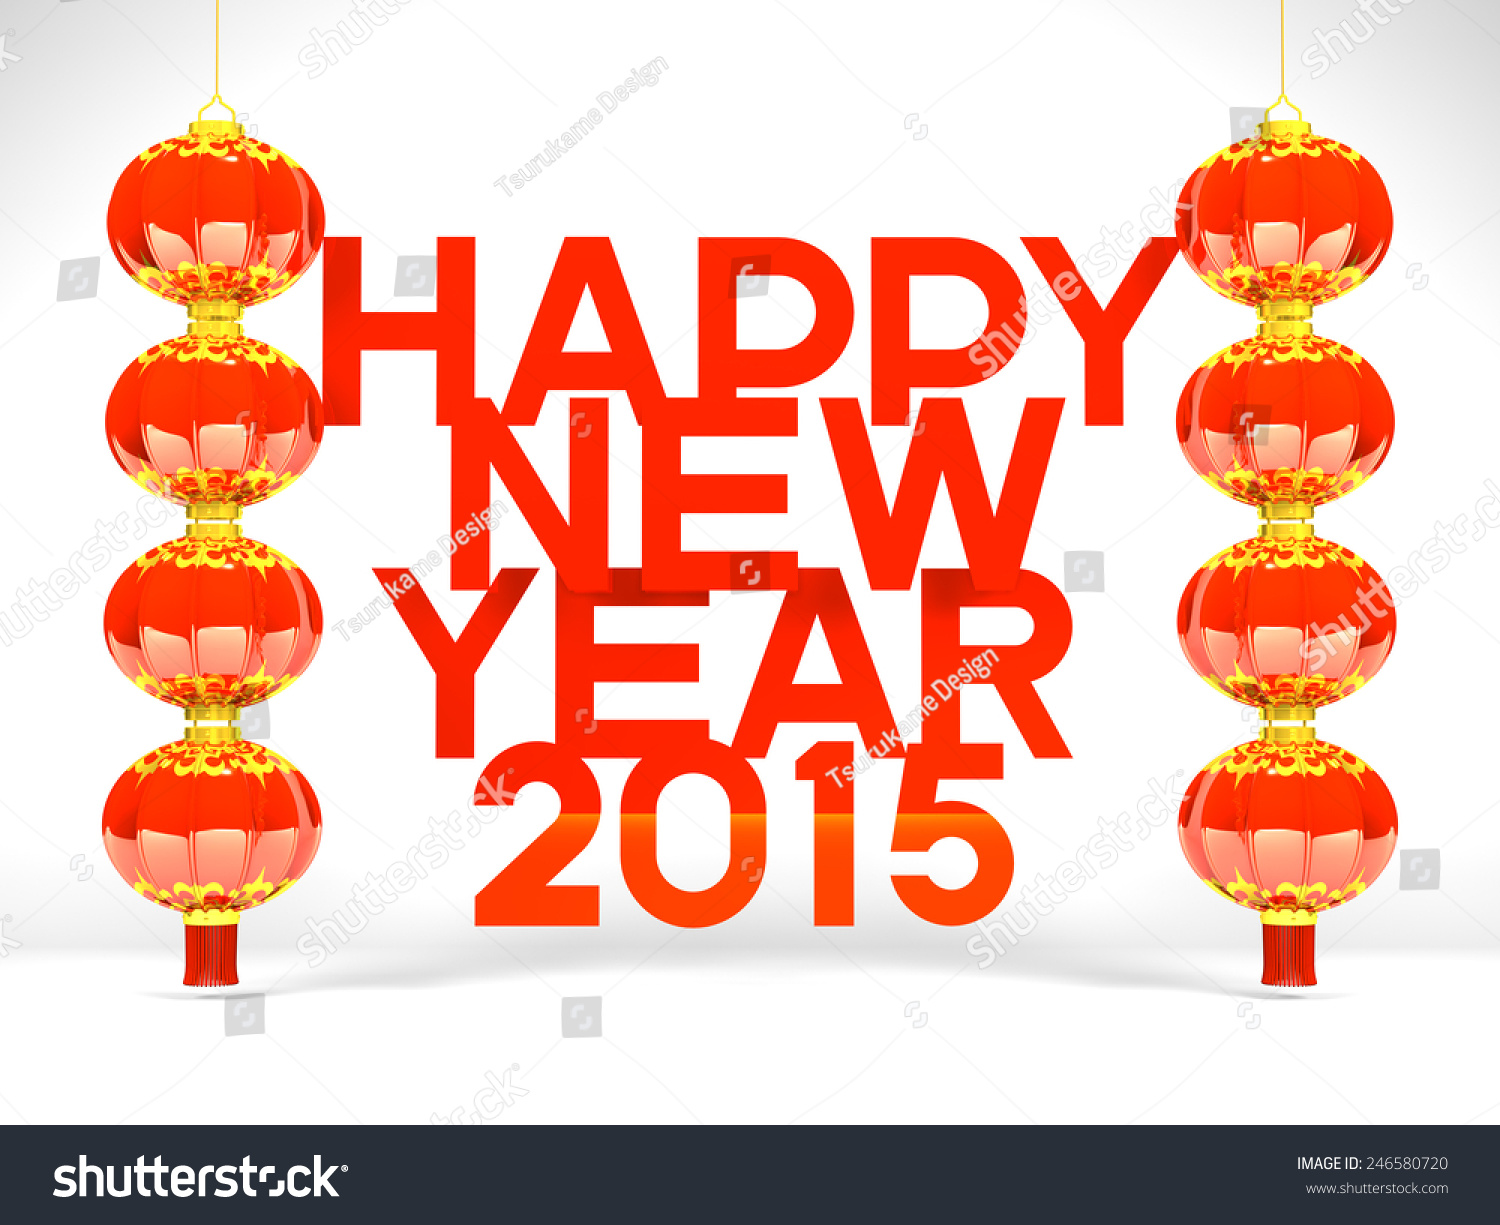 Greetings for new year 2015 gallery greeting card examples lunar new years lanterns 2015 greeting stock illustration lunar new years lanterns 2015 greeting on white kristyandbryce Choice Image